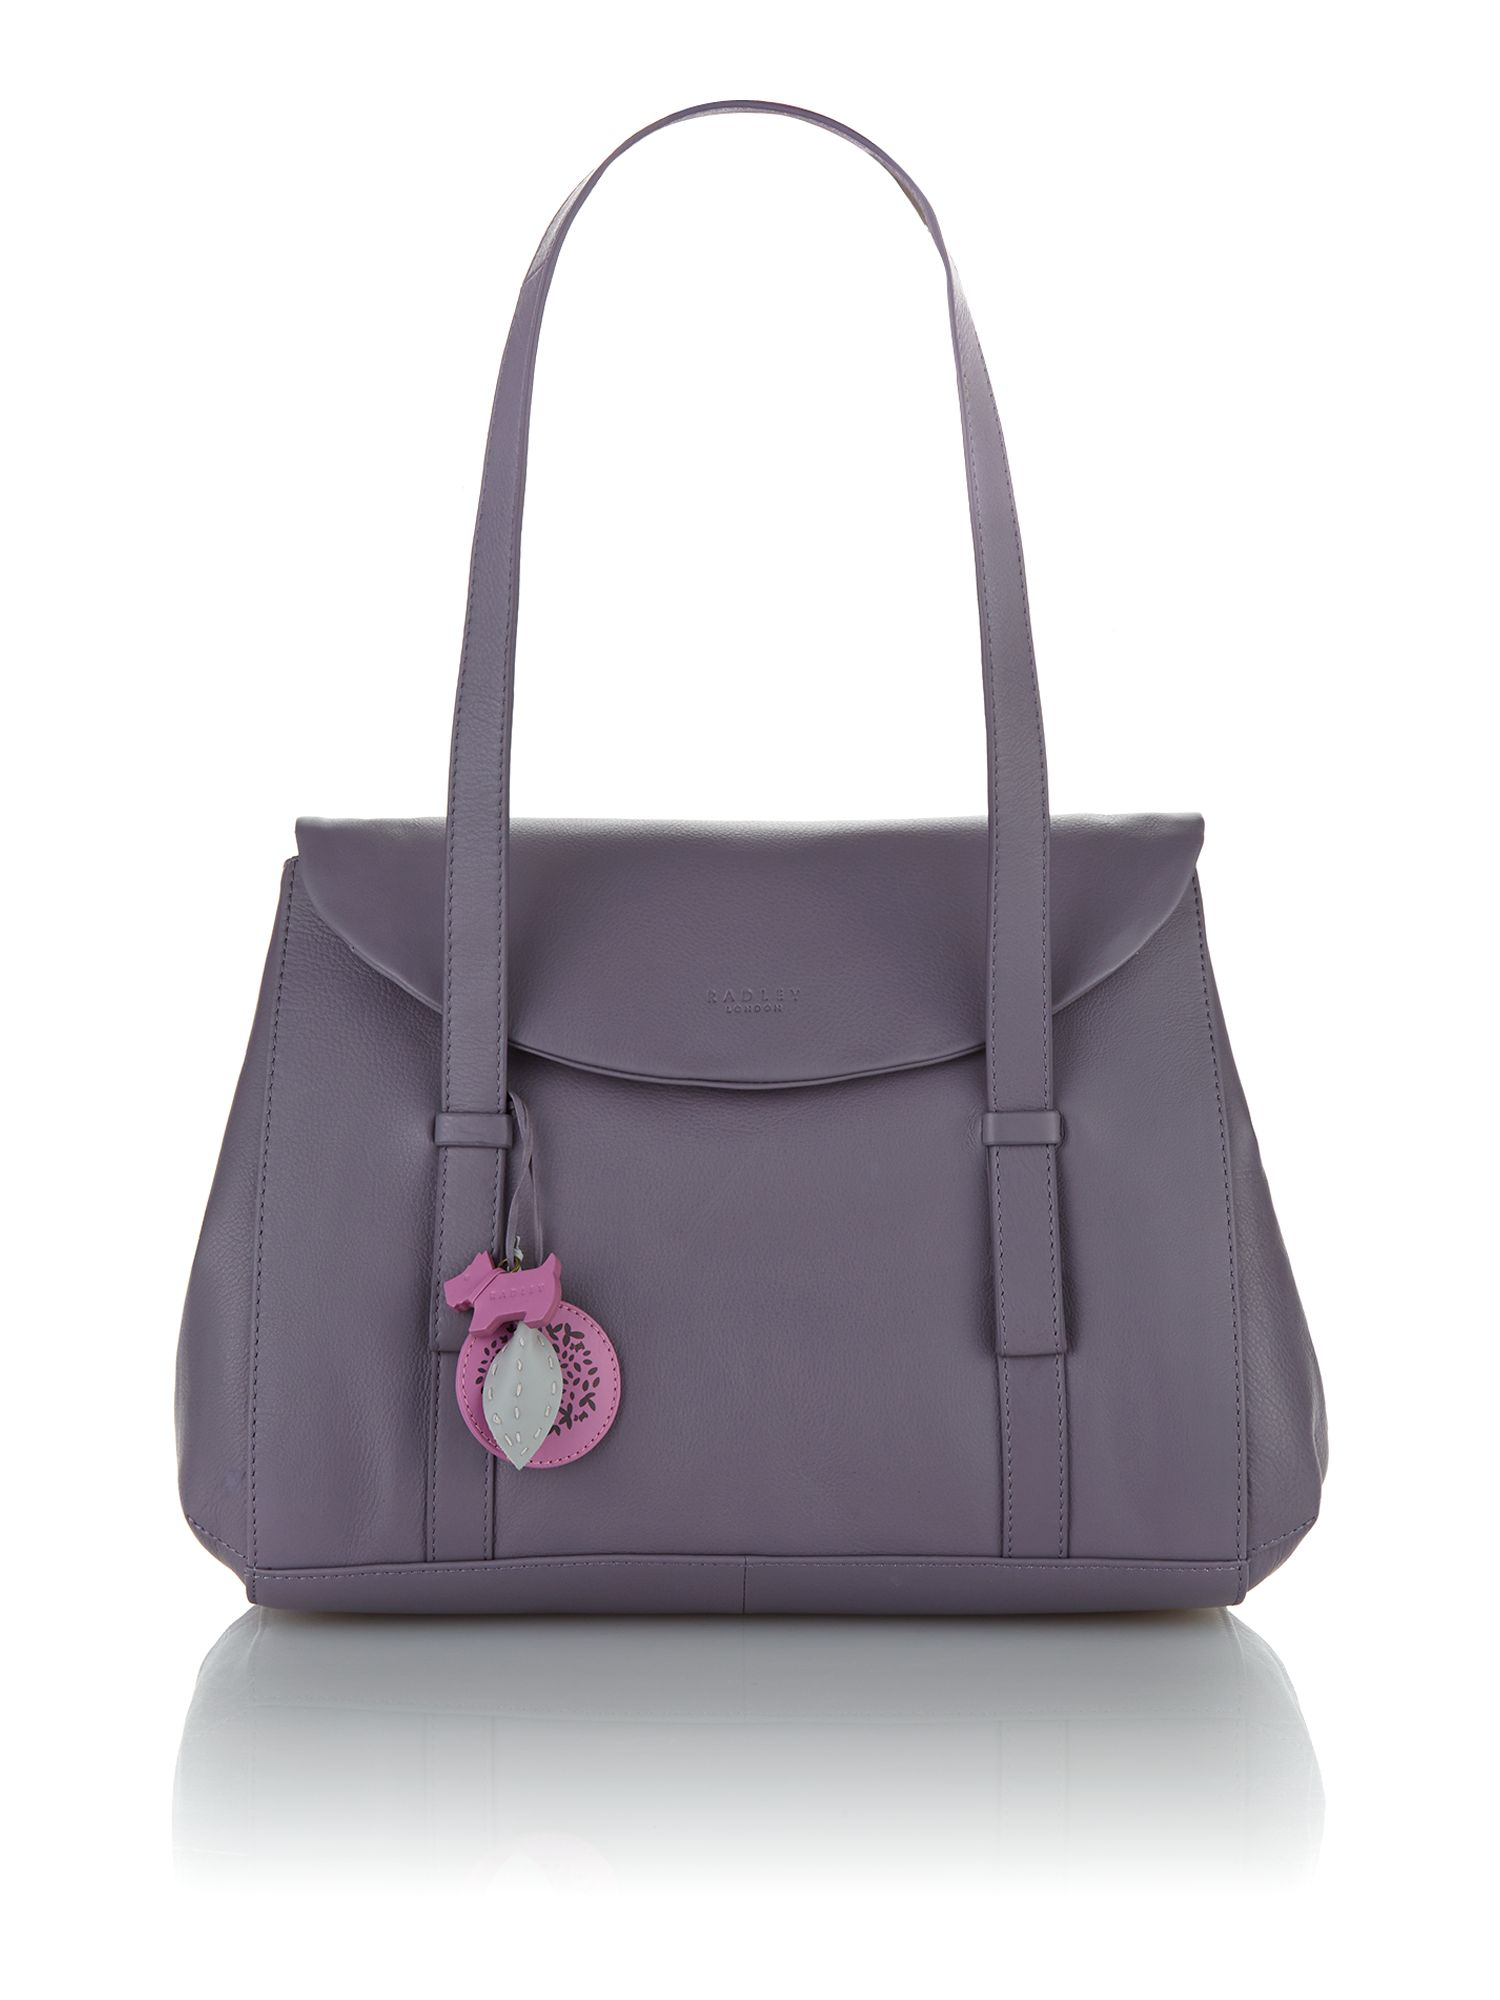 Sherwood purple large leather flapover tote bag